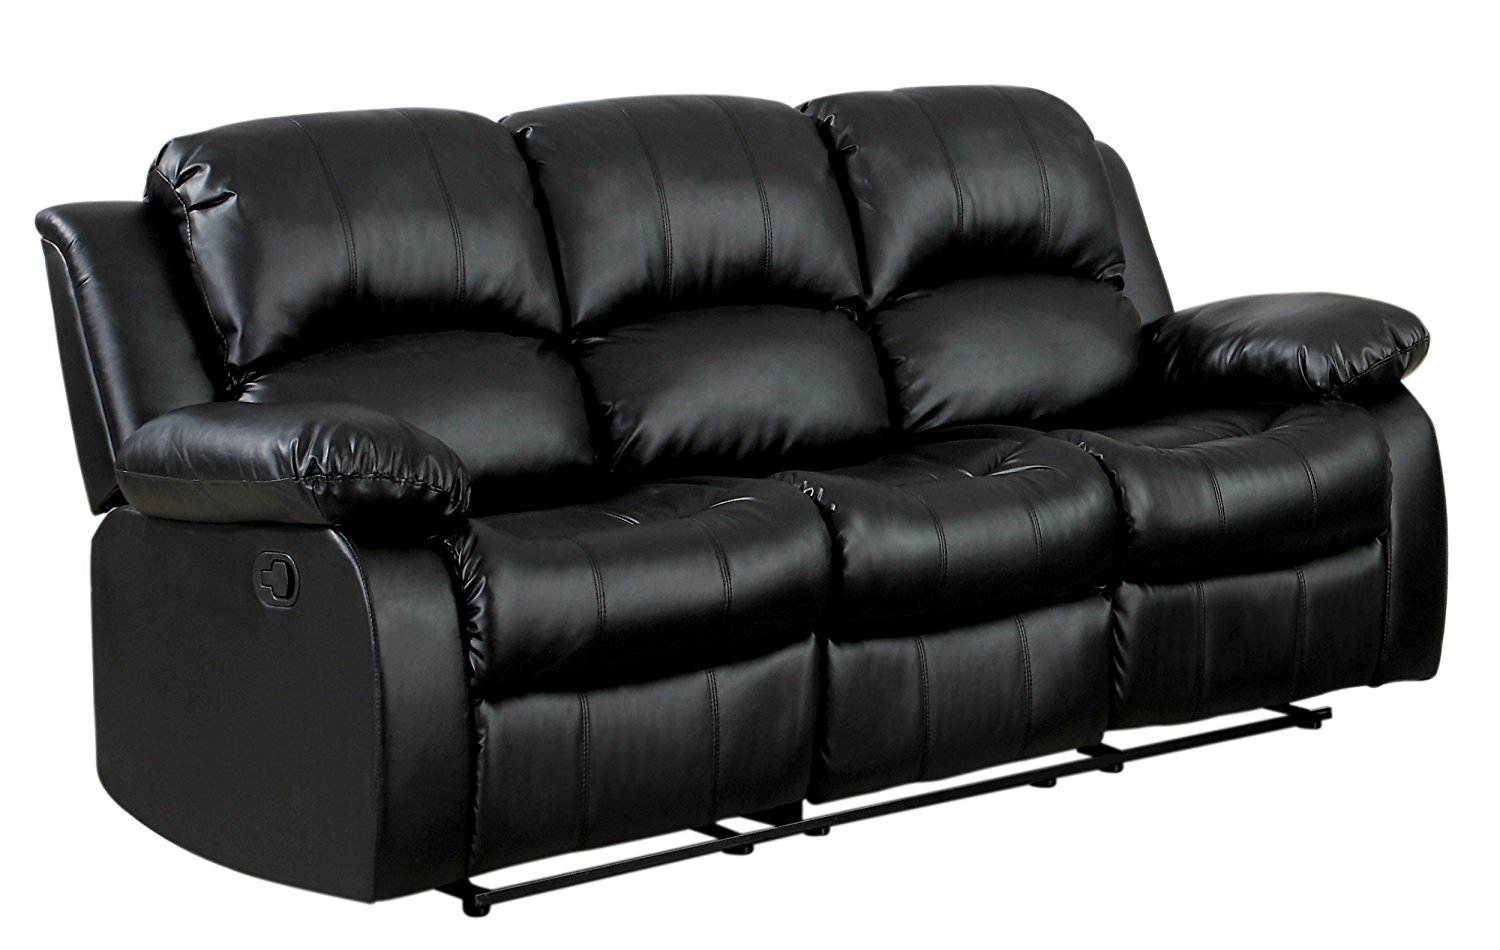 Homelegance double recliner is a cool leather sofa